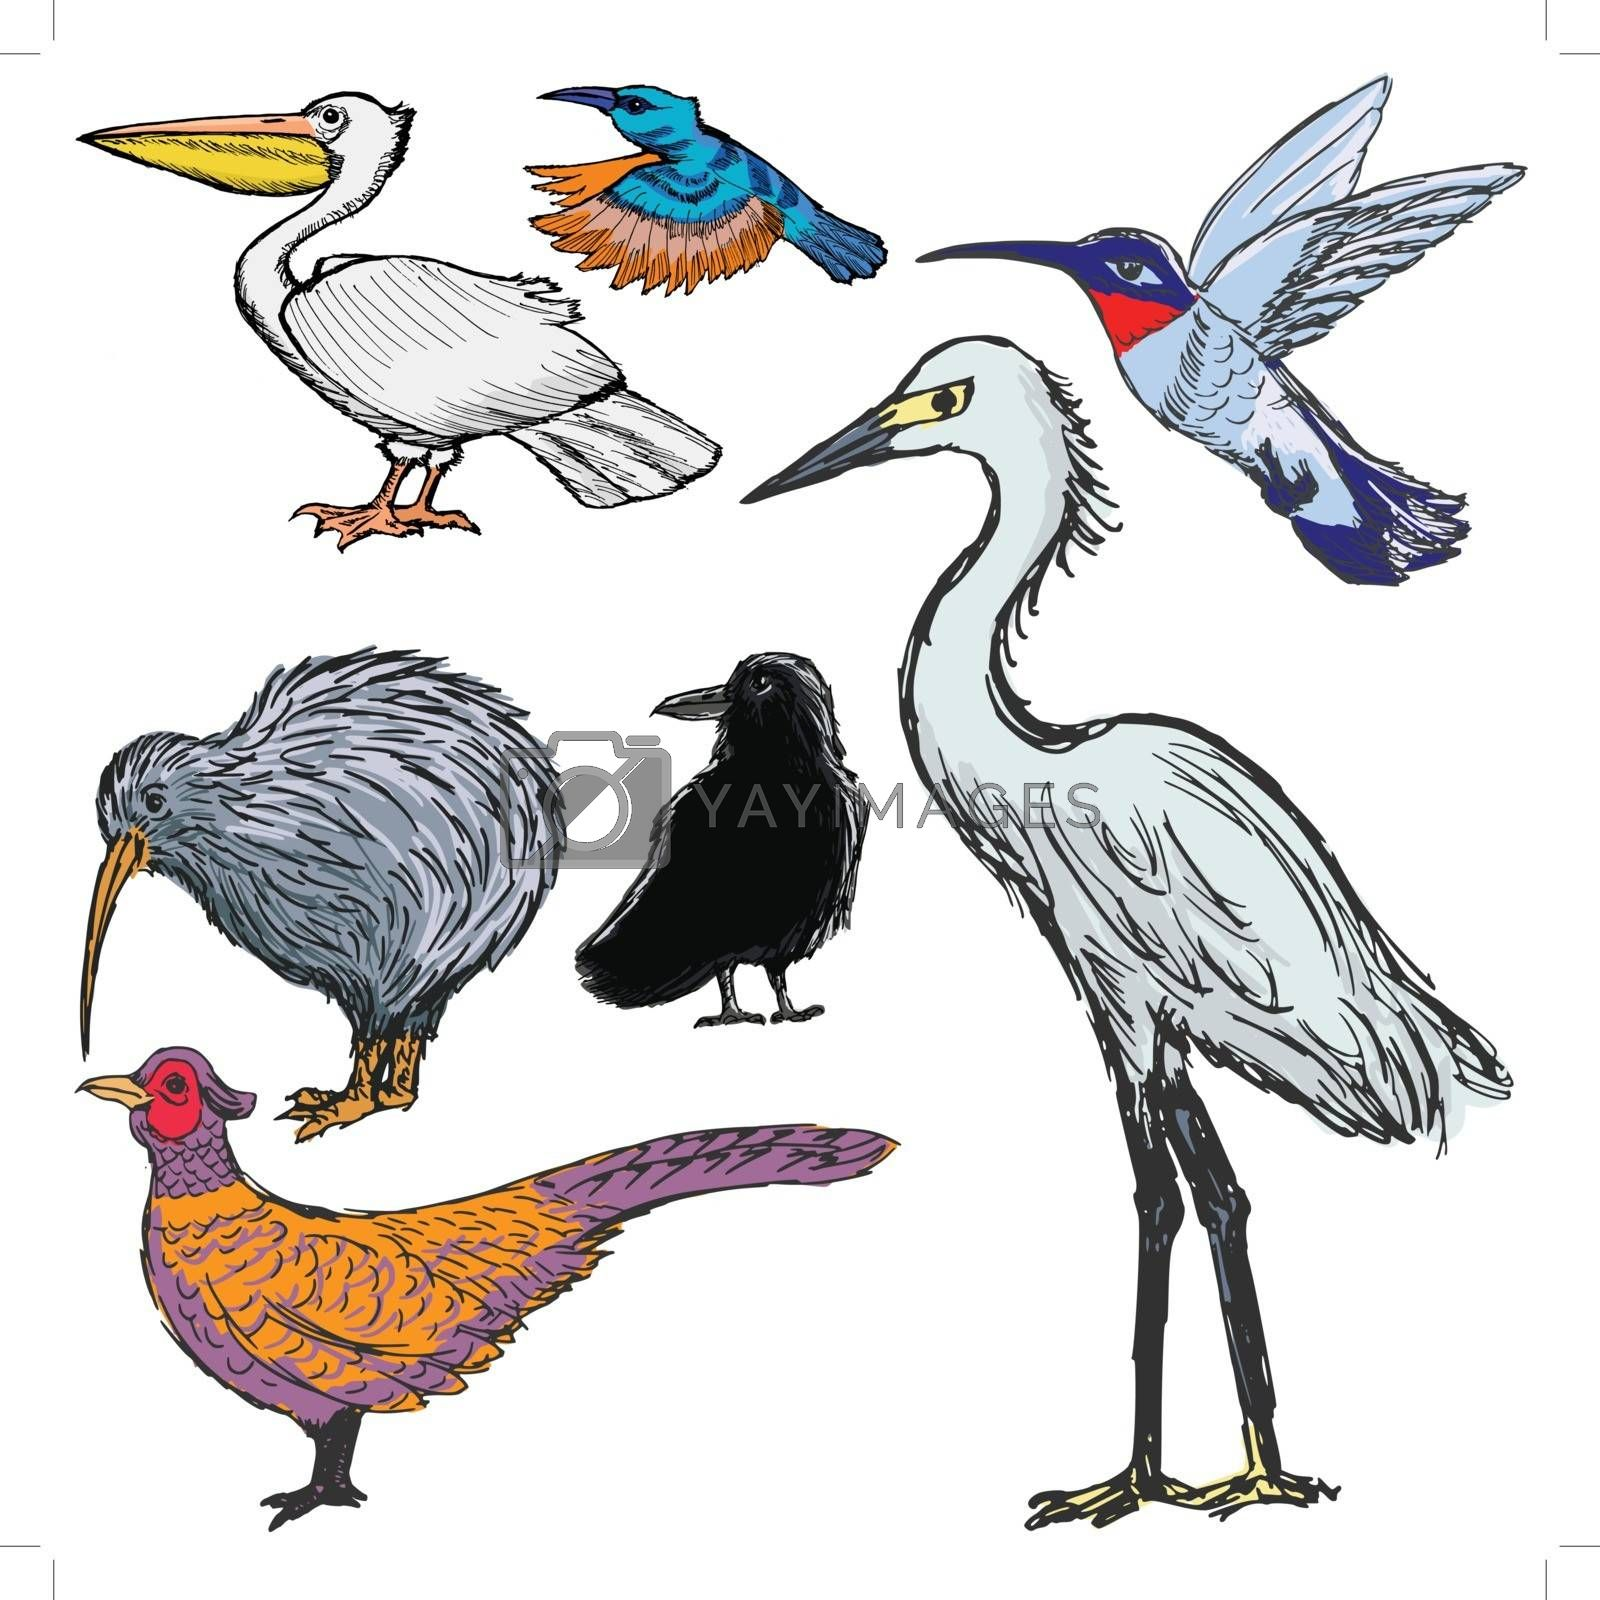 Royalty free image of set of birds by Perysty